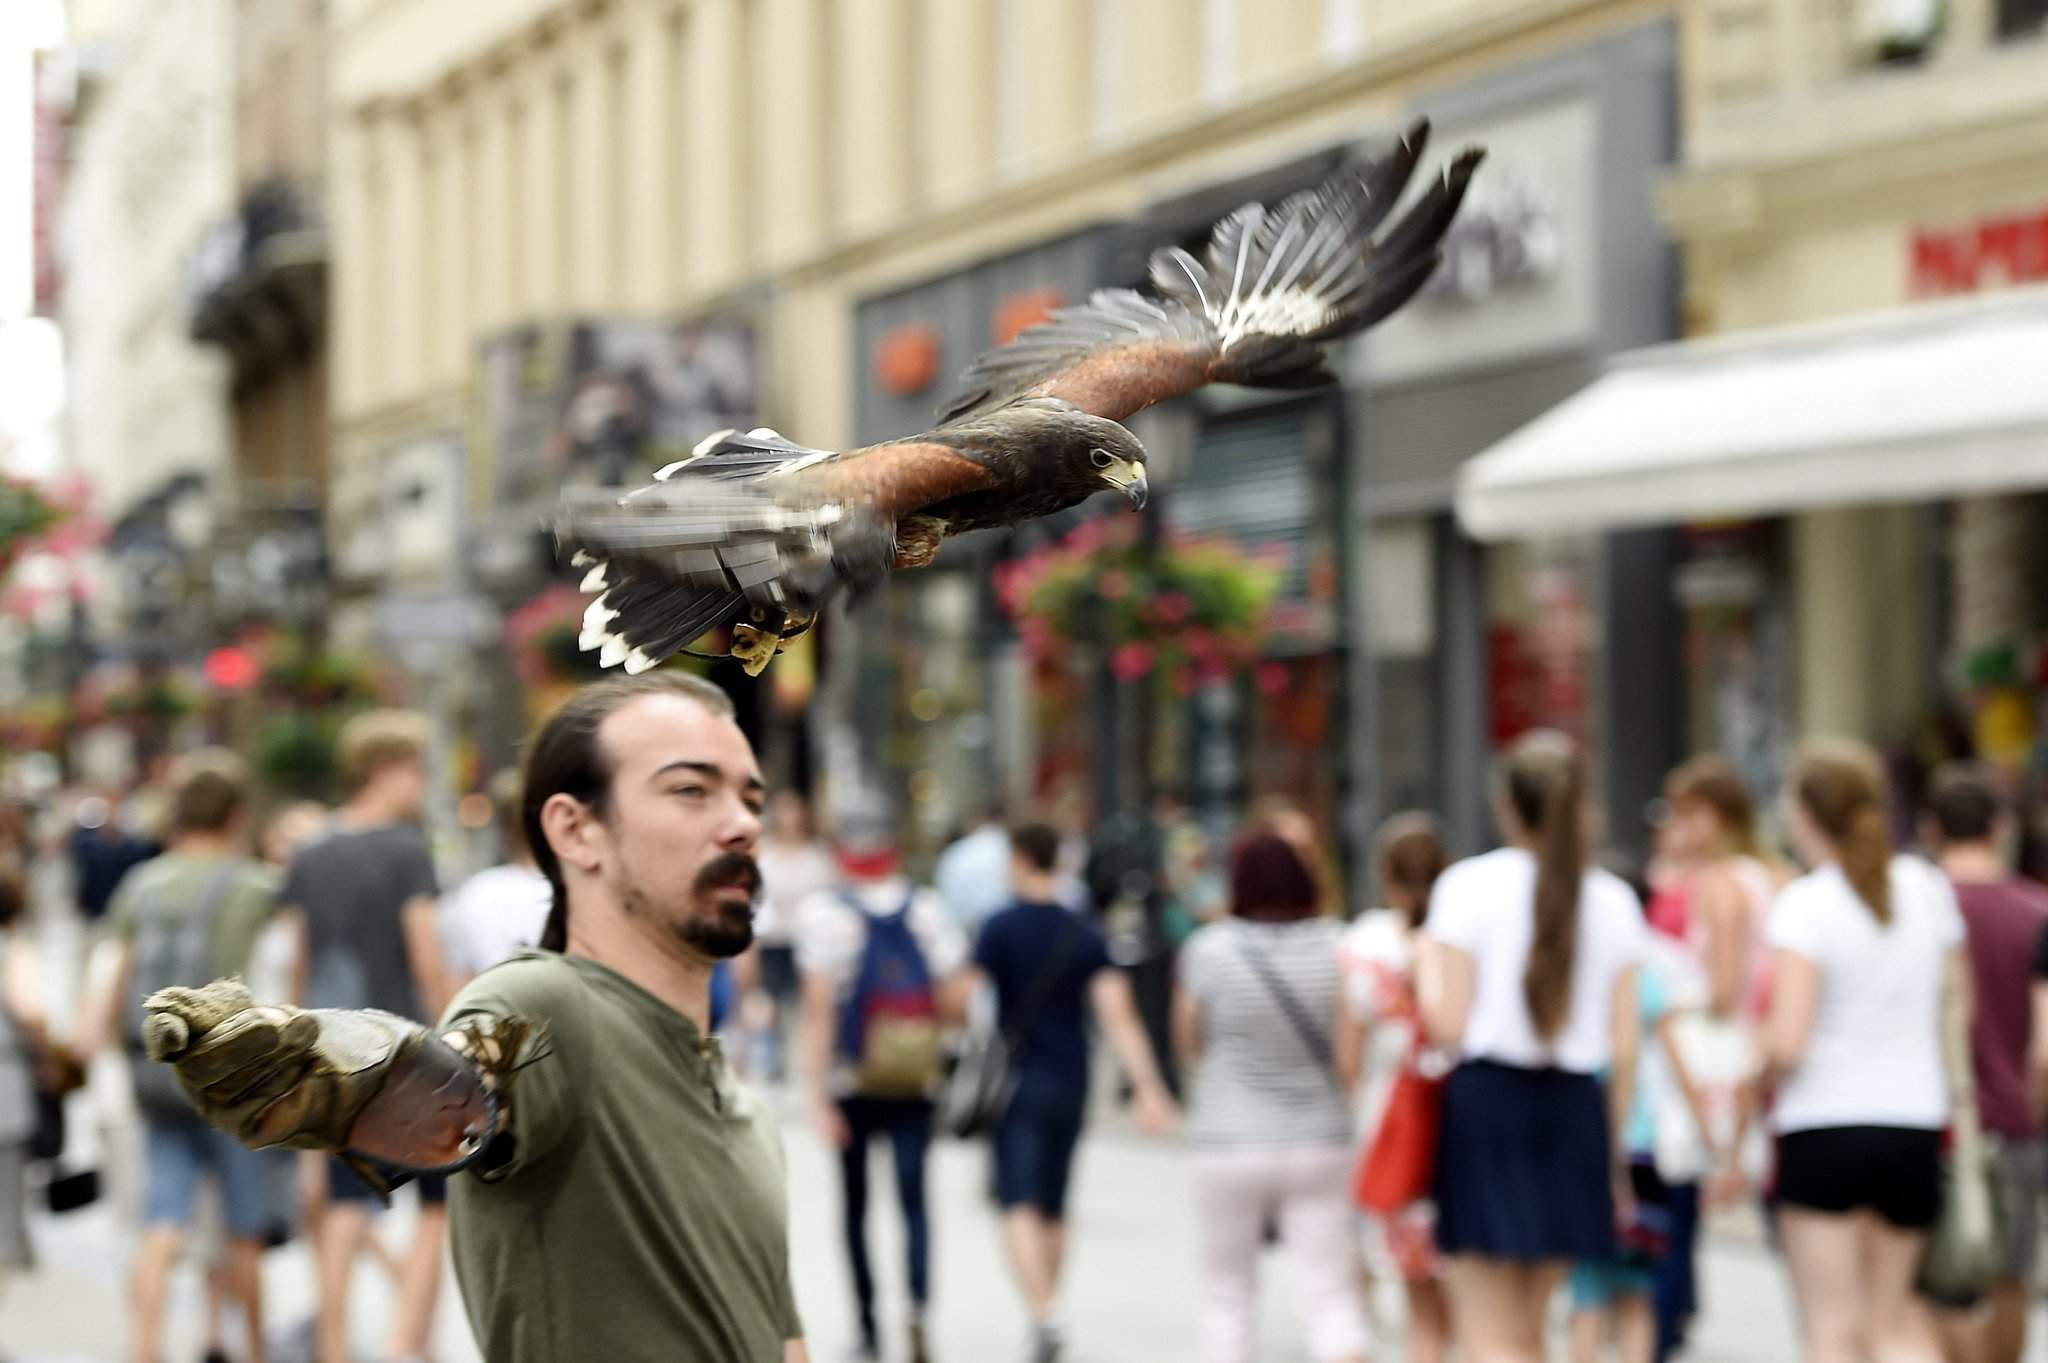 Birds of prey are deployed to keep messy pigeons away from Váci Street pedestrian district in Budapest – Photos